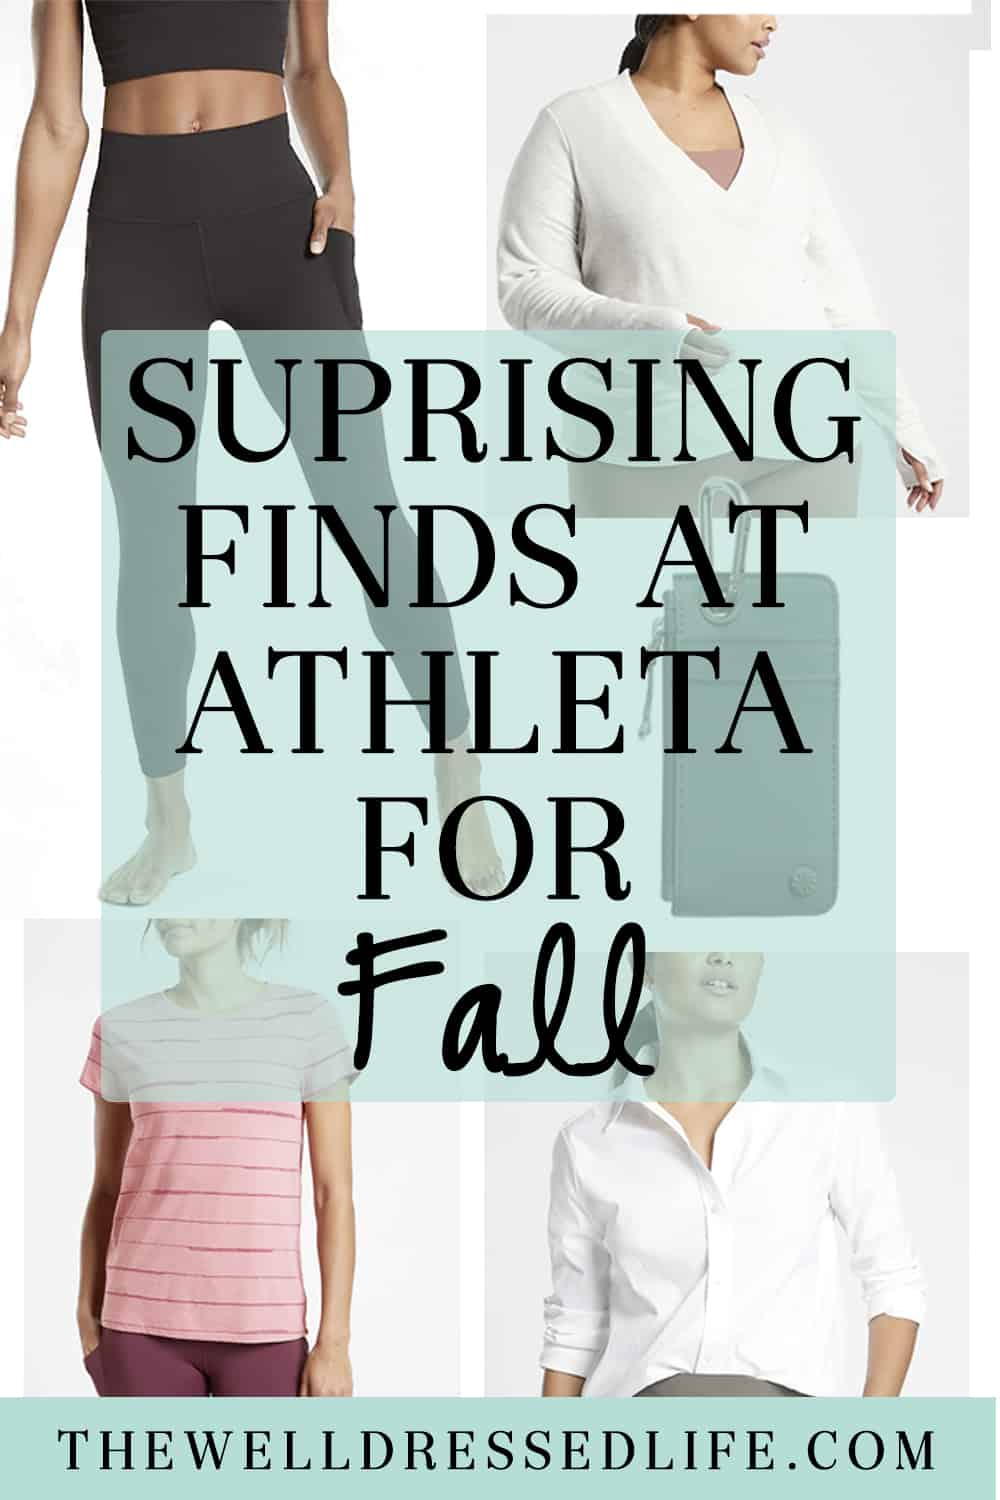 Surprising Finds at Athleta for Early Fall